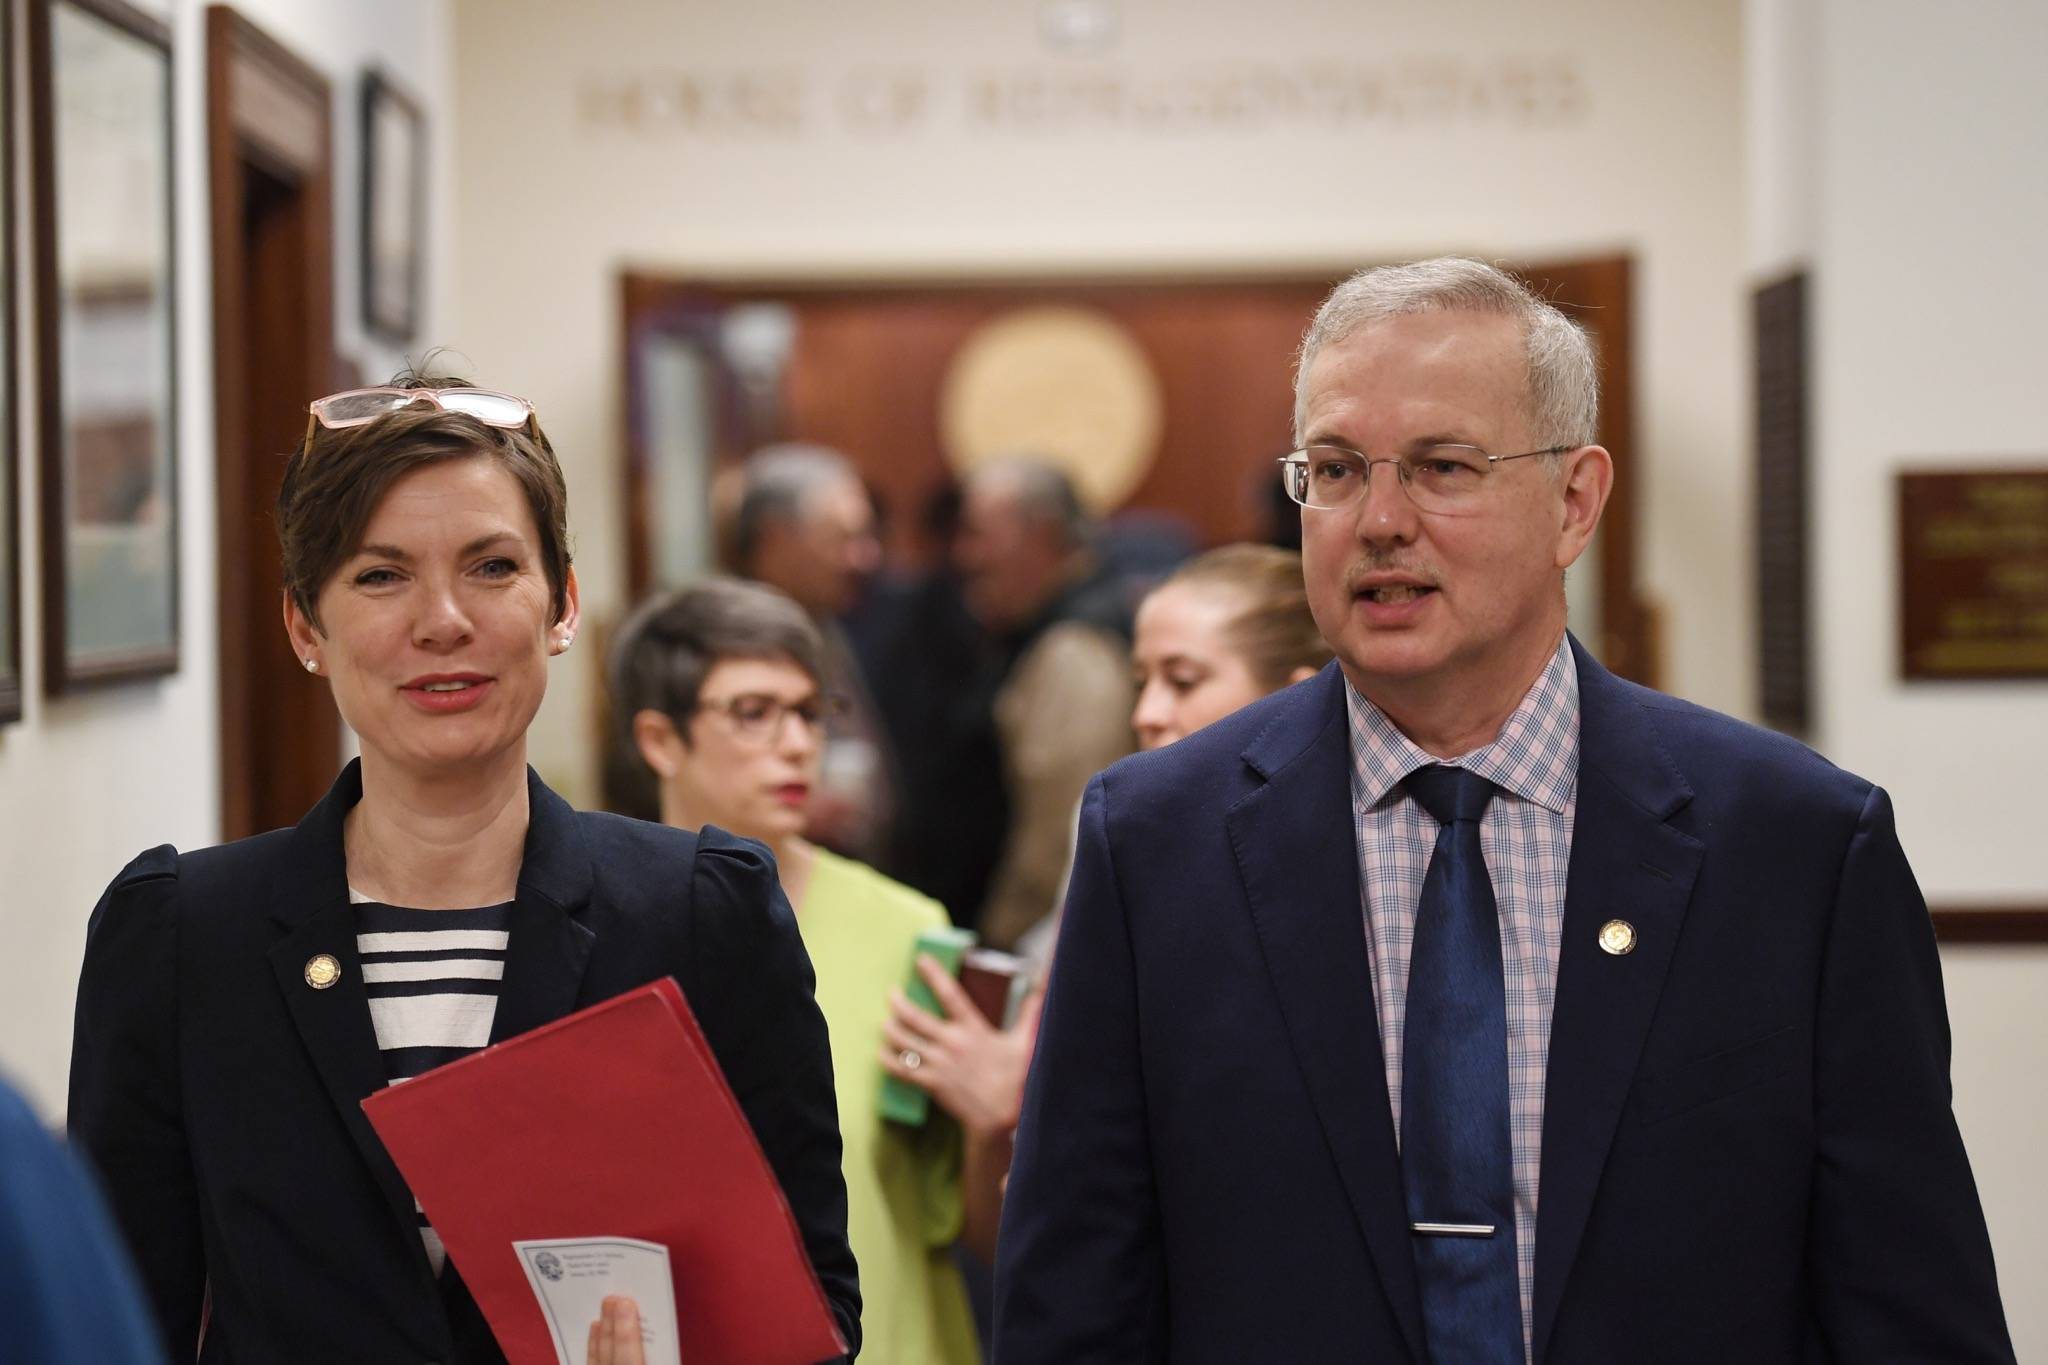 Rep. Ivy Spohnholz, D-Anchorage, walks with Speaker of the House Bryce Edgmon, I-Dillingham, as the House takes an at ease to wait for the conference committee on the crime bill to take place at the Capitol on Thursday, May 16, 2019. (Michael Penn | Juneau Empire)